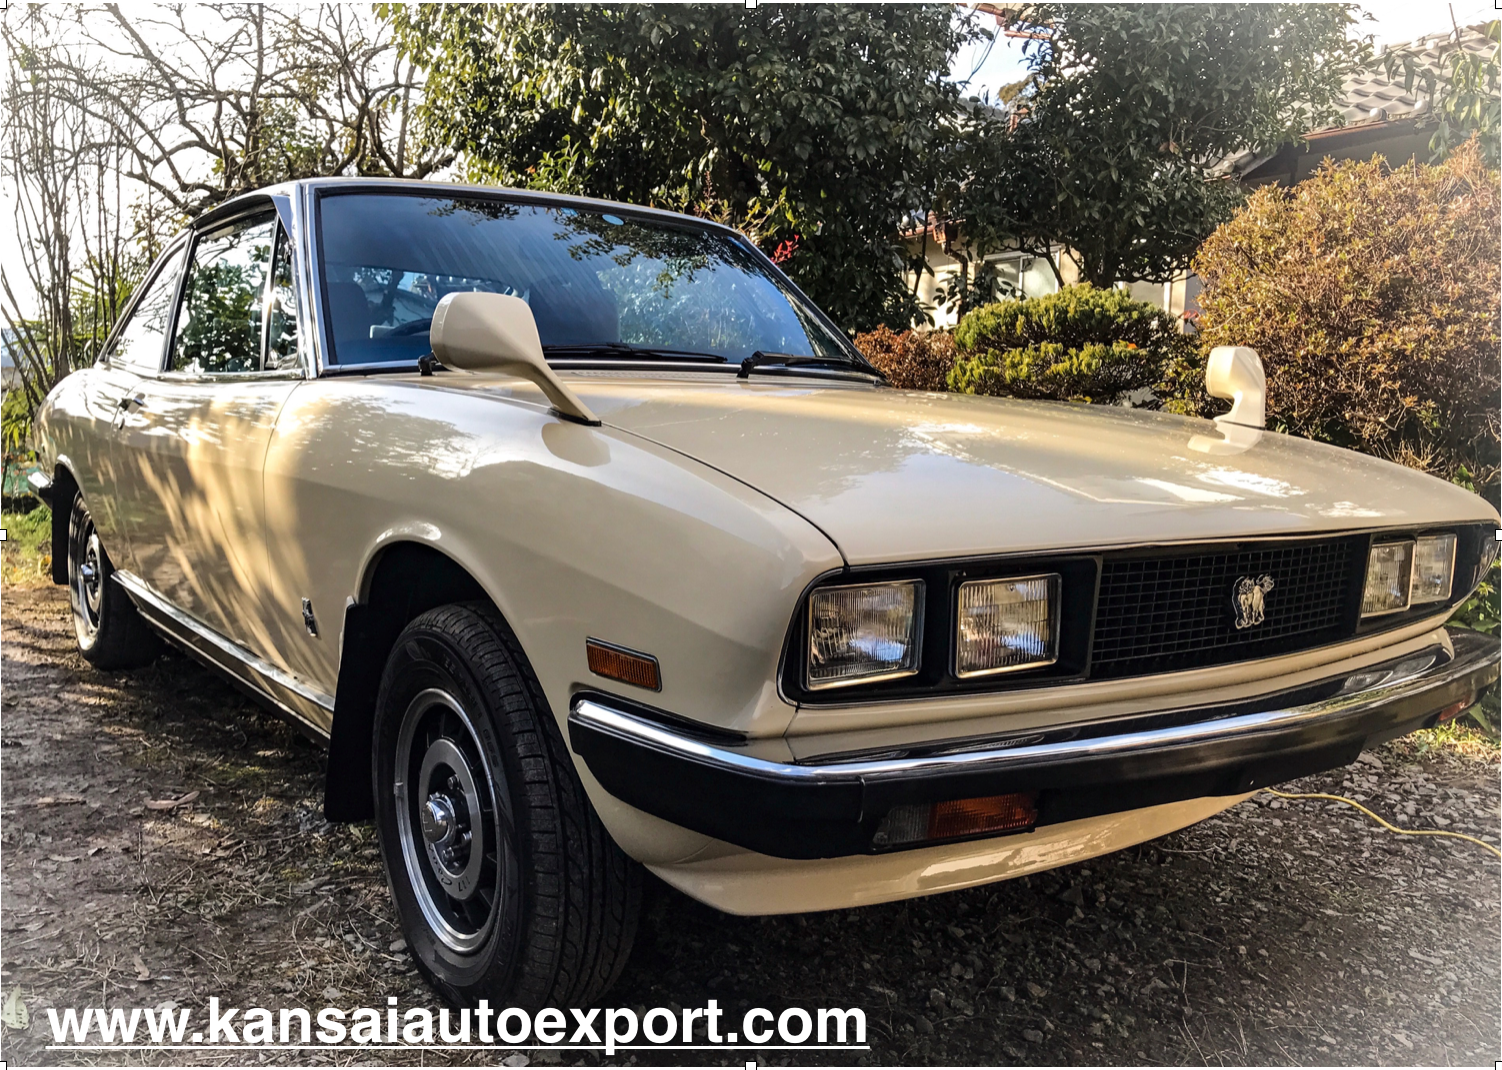 For Sale- Isuzu 117 Coupe. 1978, 49,000 Miles/78,000KM. Large service and maintenance history book present. Ask us for more details or alternatively , please visit our website.